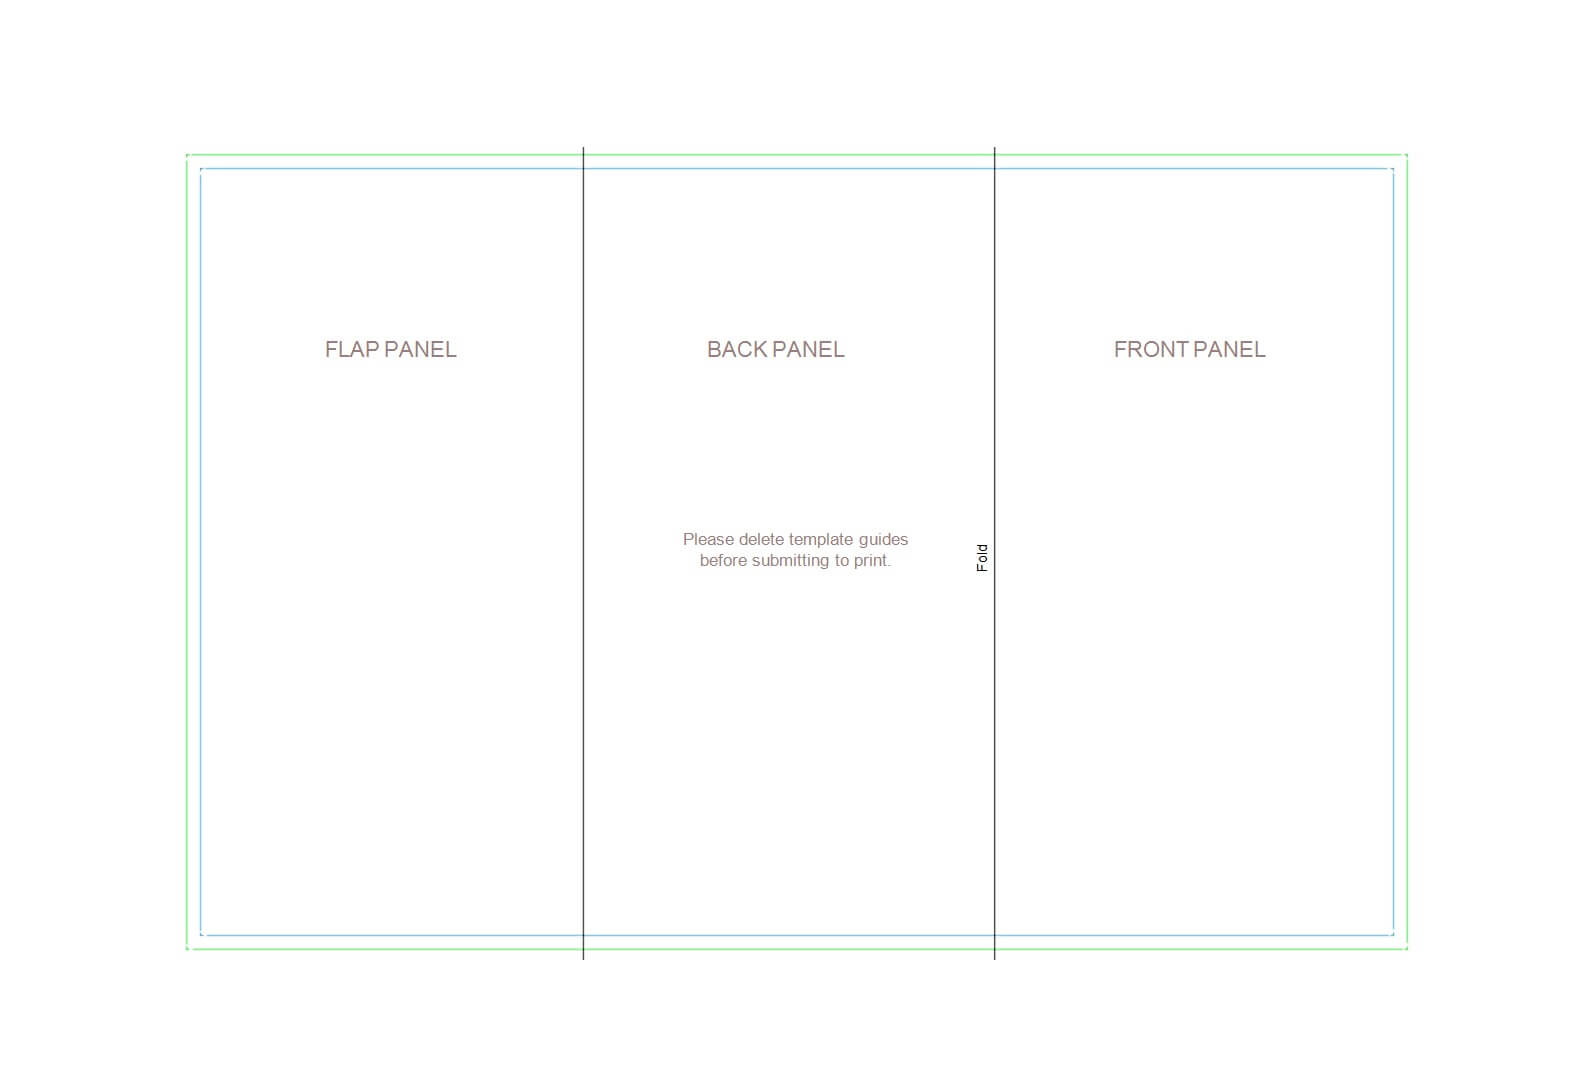 50 Free Pamphlet Templates [Word / Google Docs] ᐅ Templatelab Intended For Brochure Template Google Docs